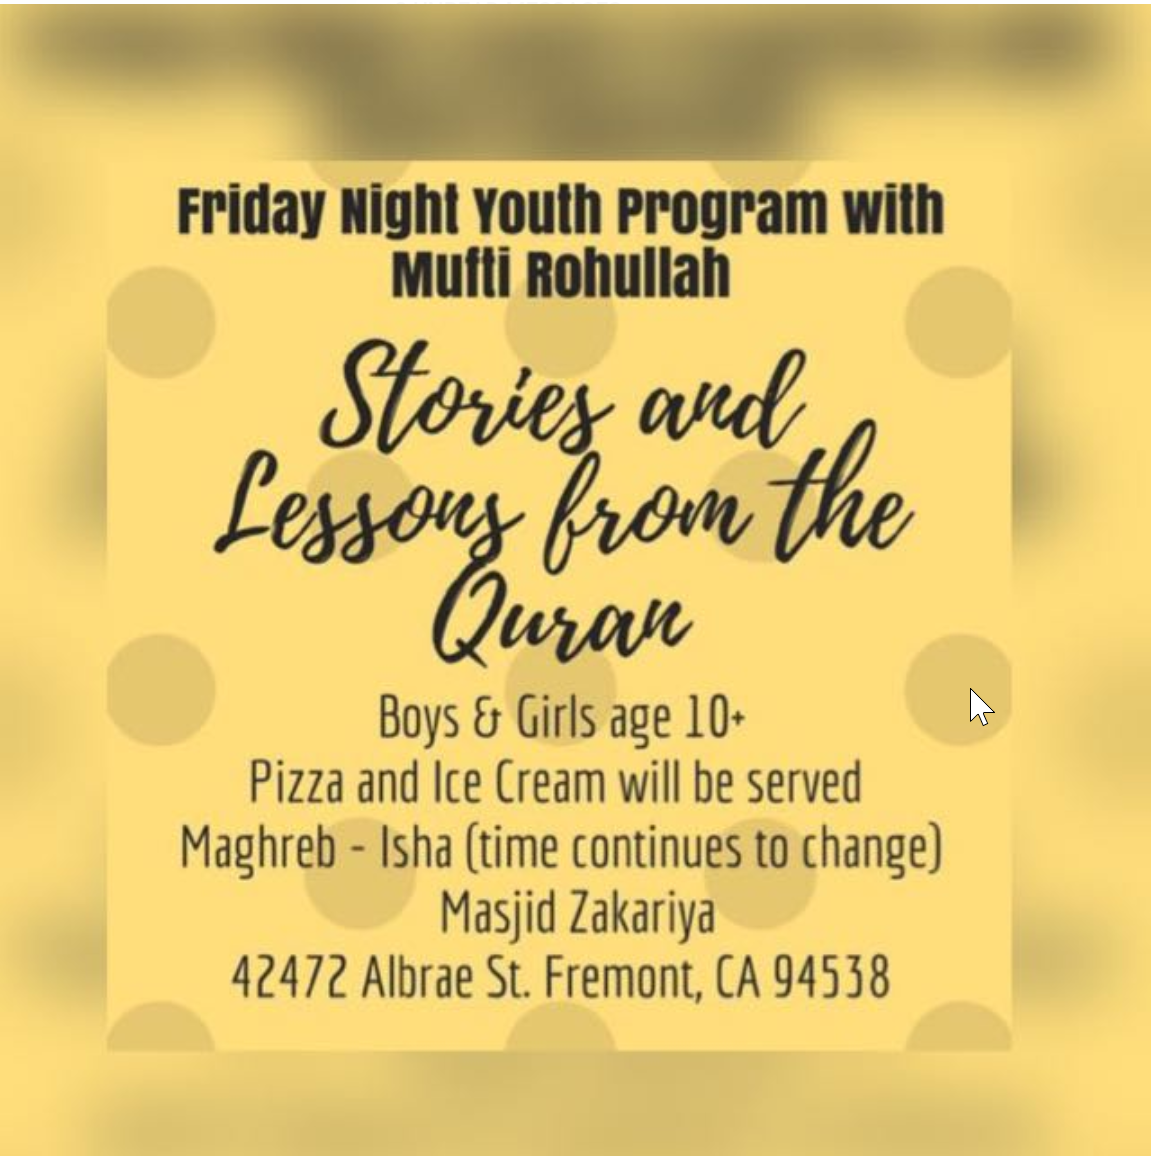 Friday Youth Program